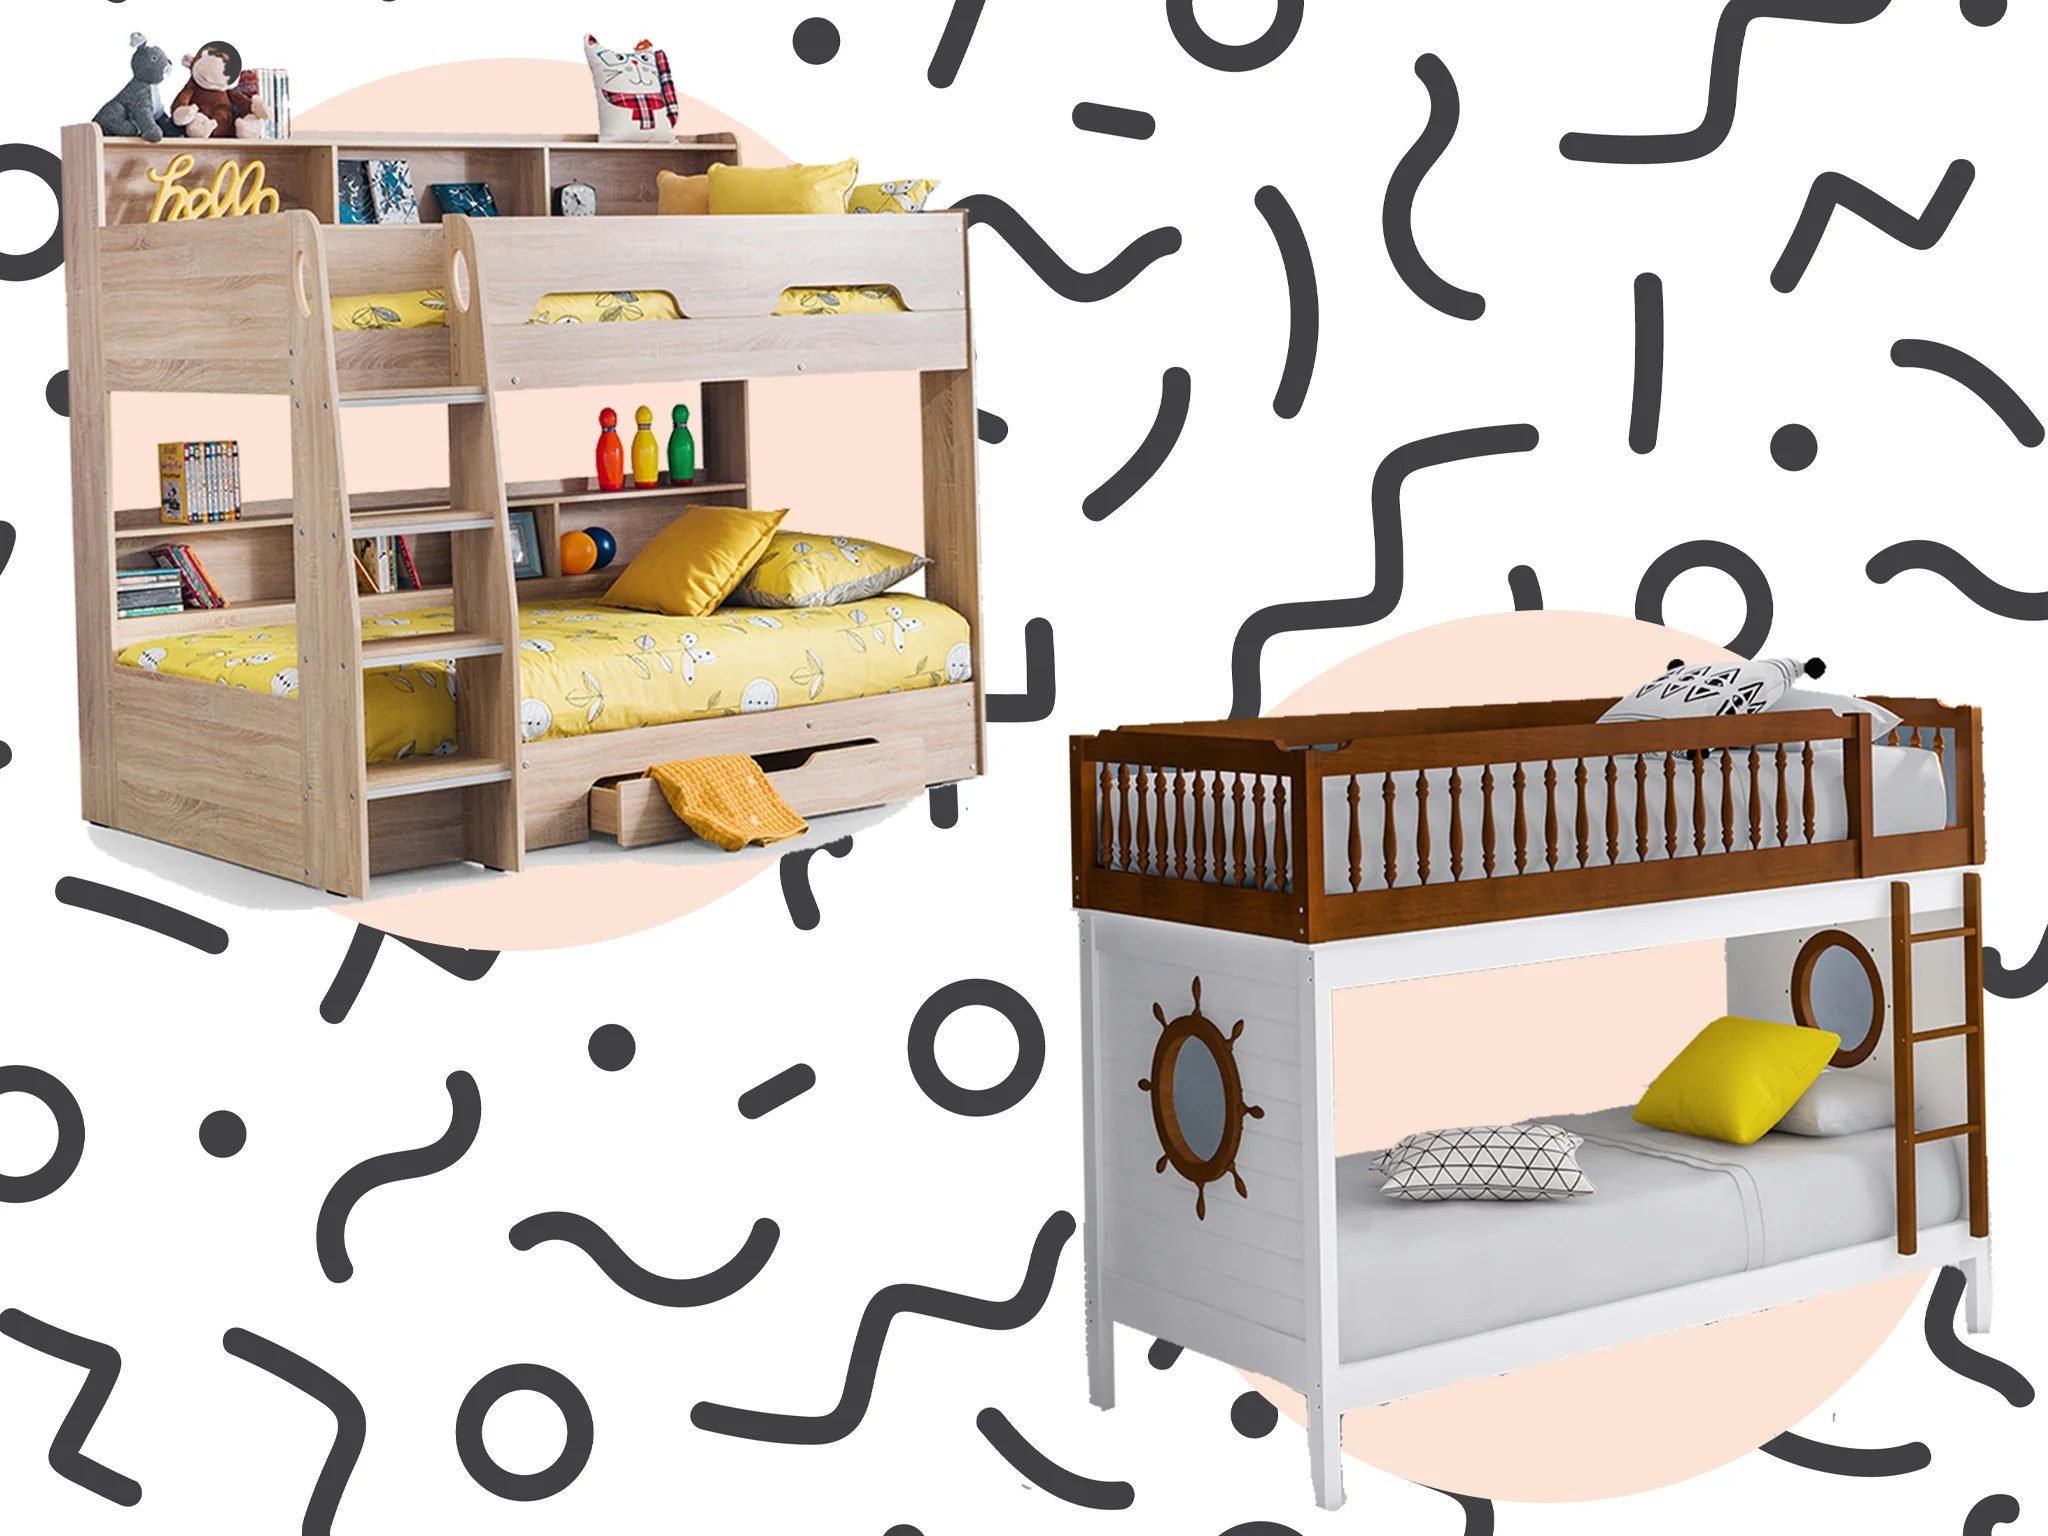 Best Kids Bunk Beds That Are Fun And Functional The Independent